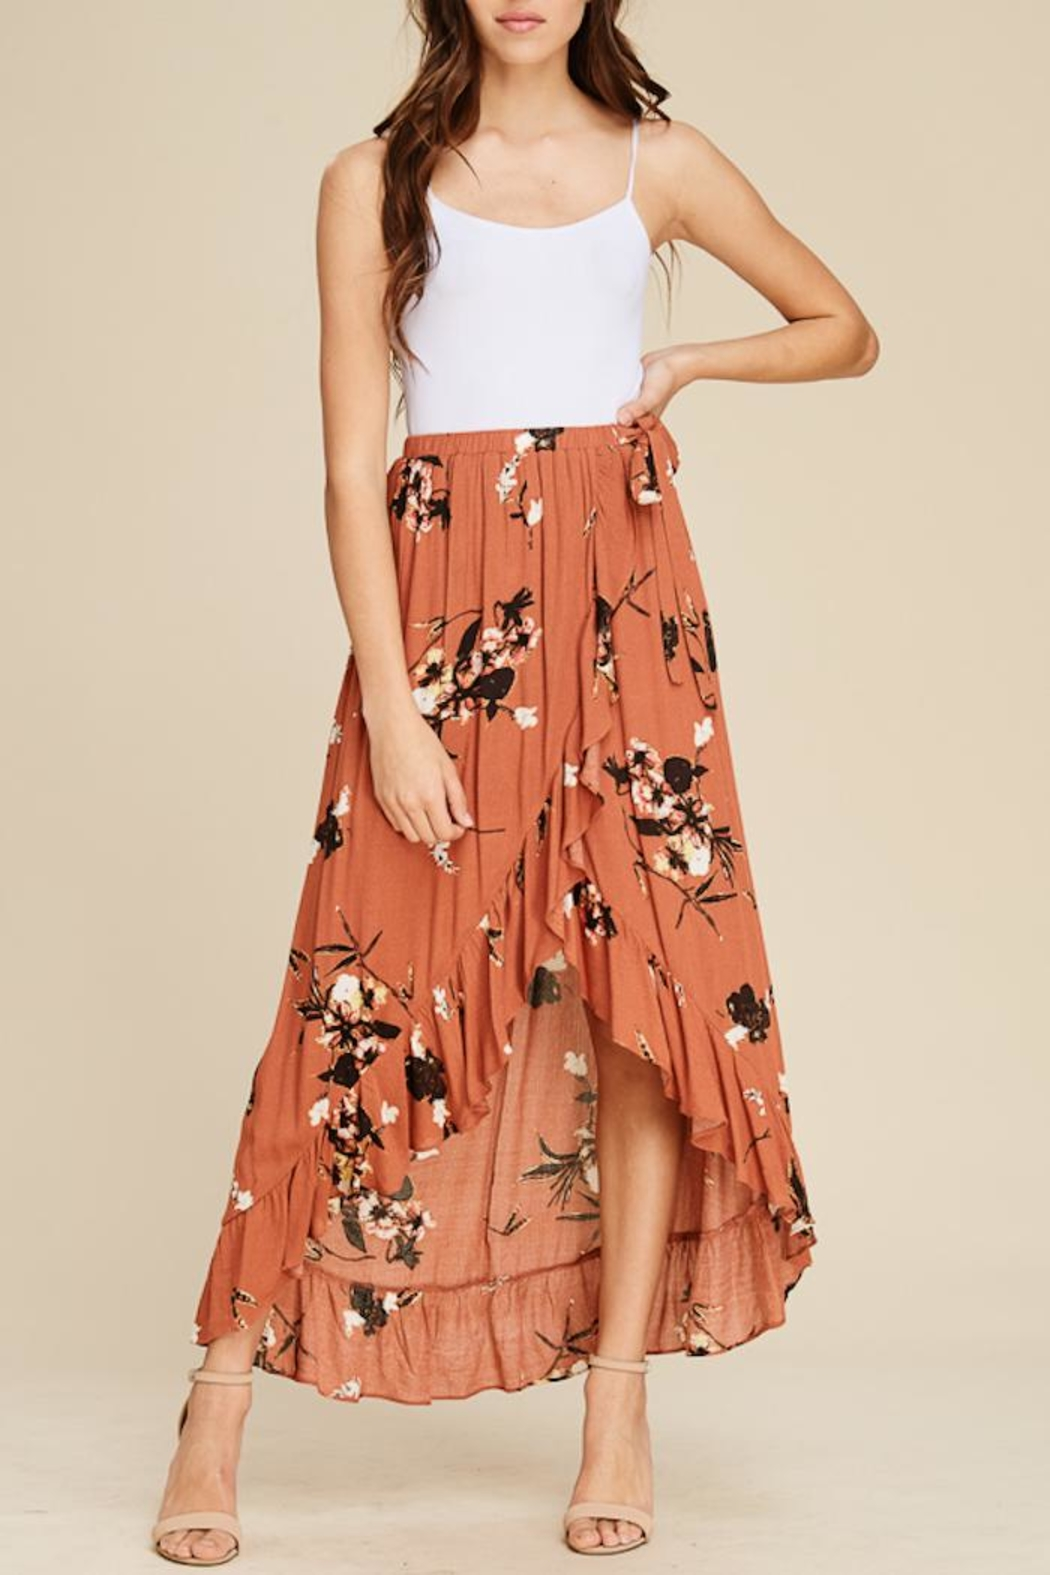 Staccato Floral Ruffle Skirt - Main Image